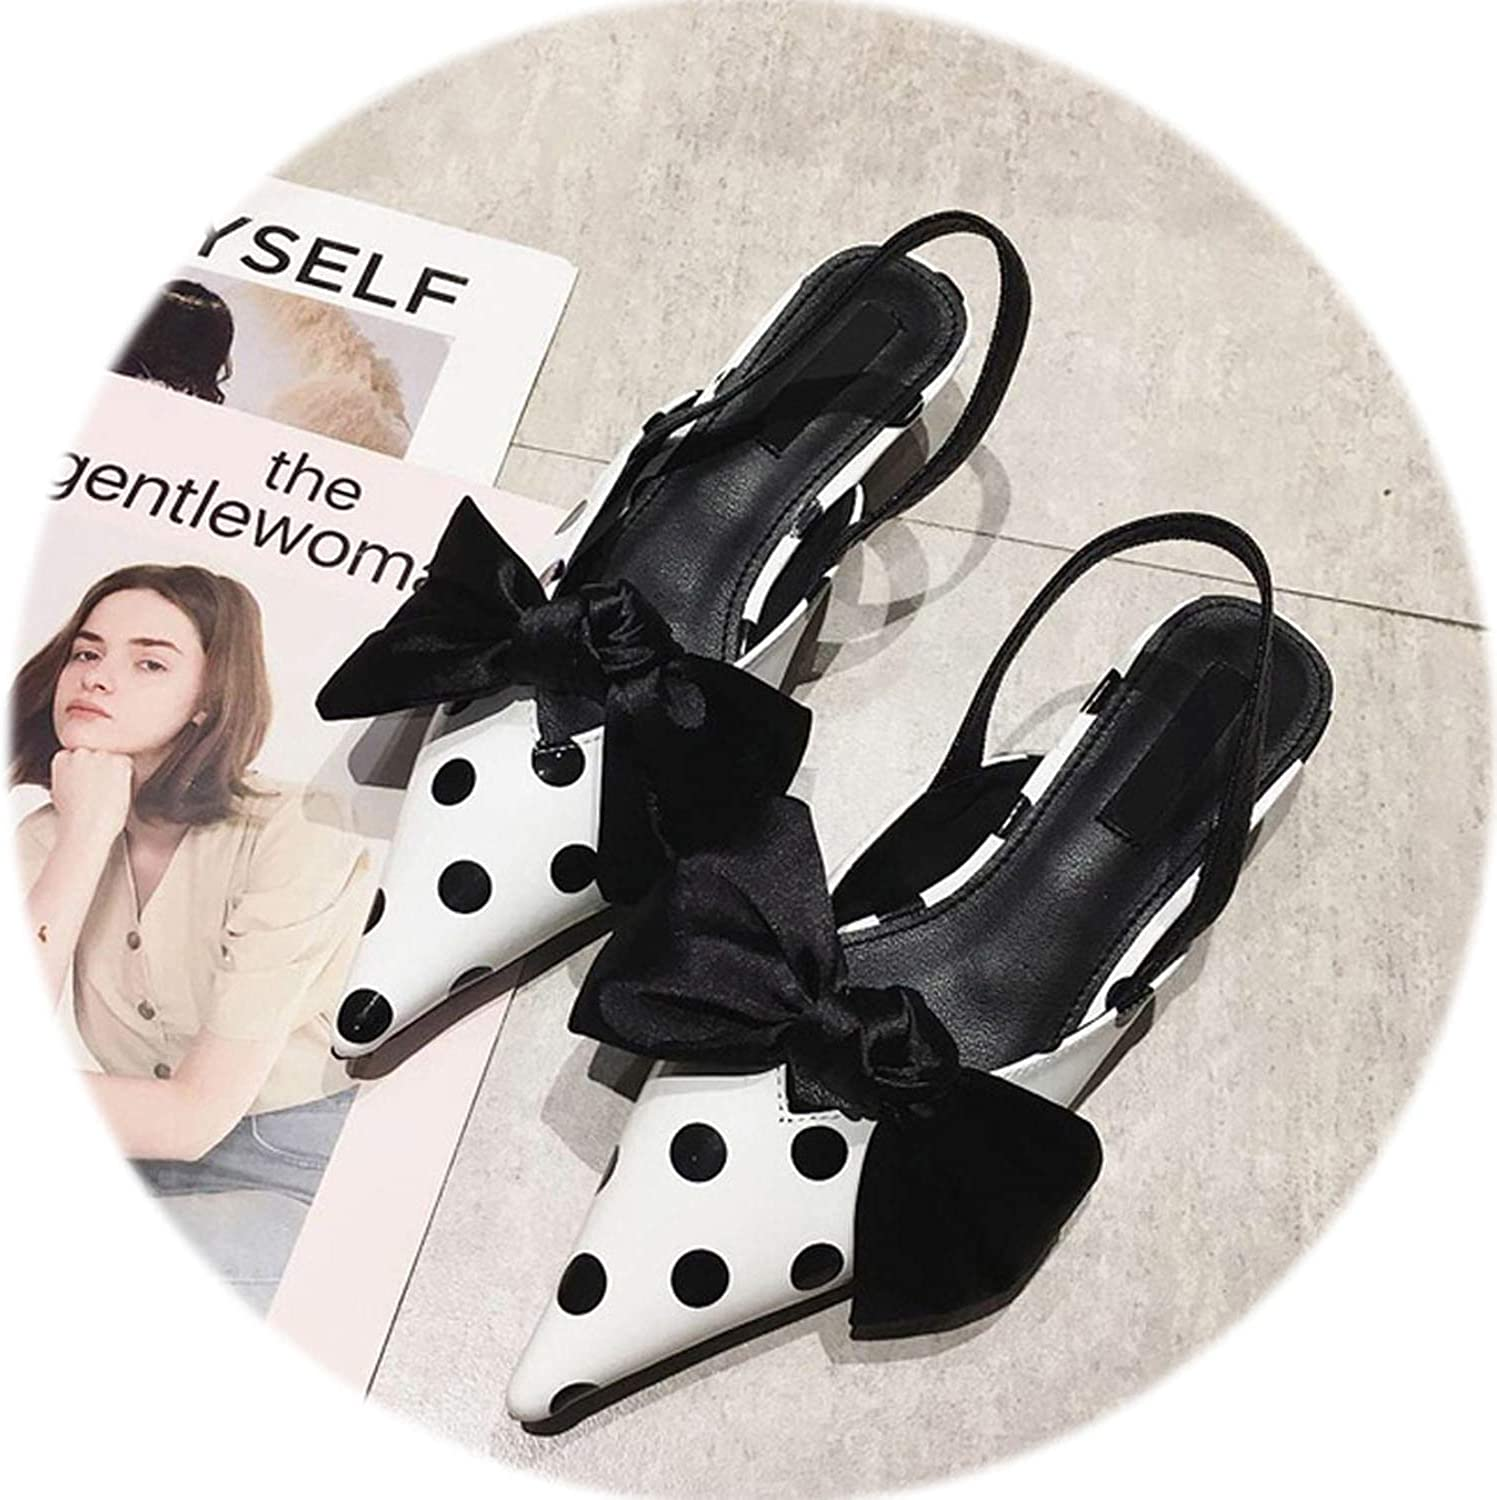 Gooding life High Heels Women Pumps Bowtie Slingbacks Ladies shoes Kitten Heel Women Mules Valentine shoes Women